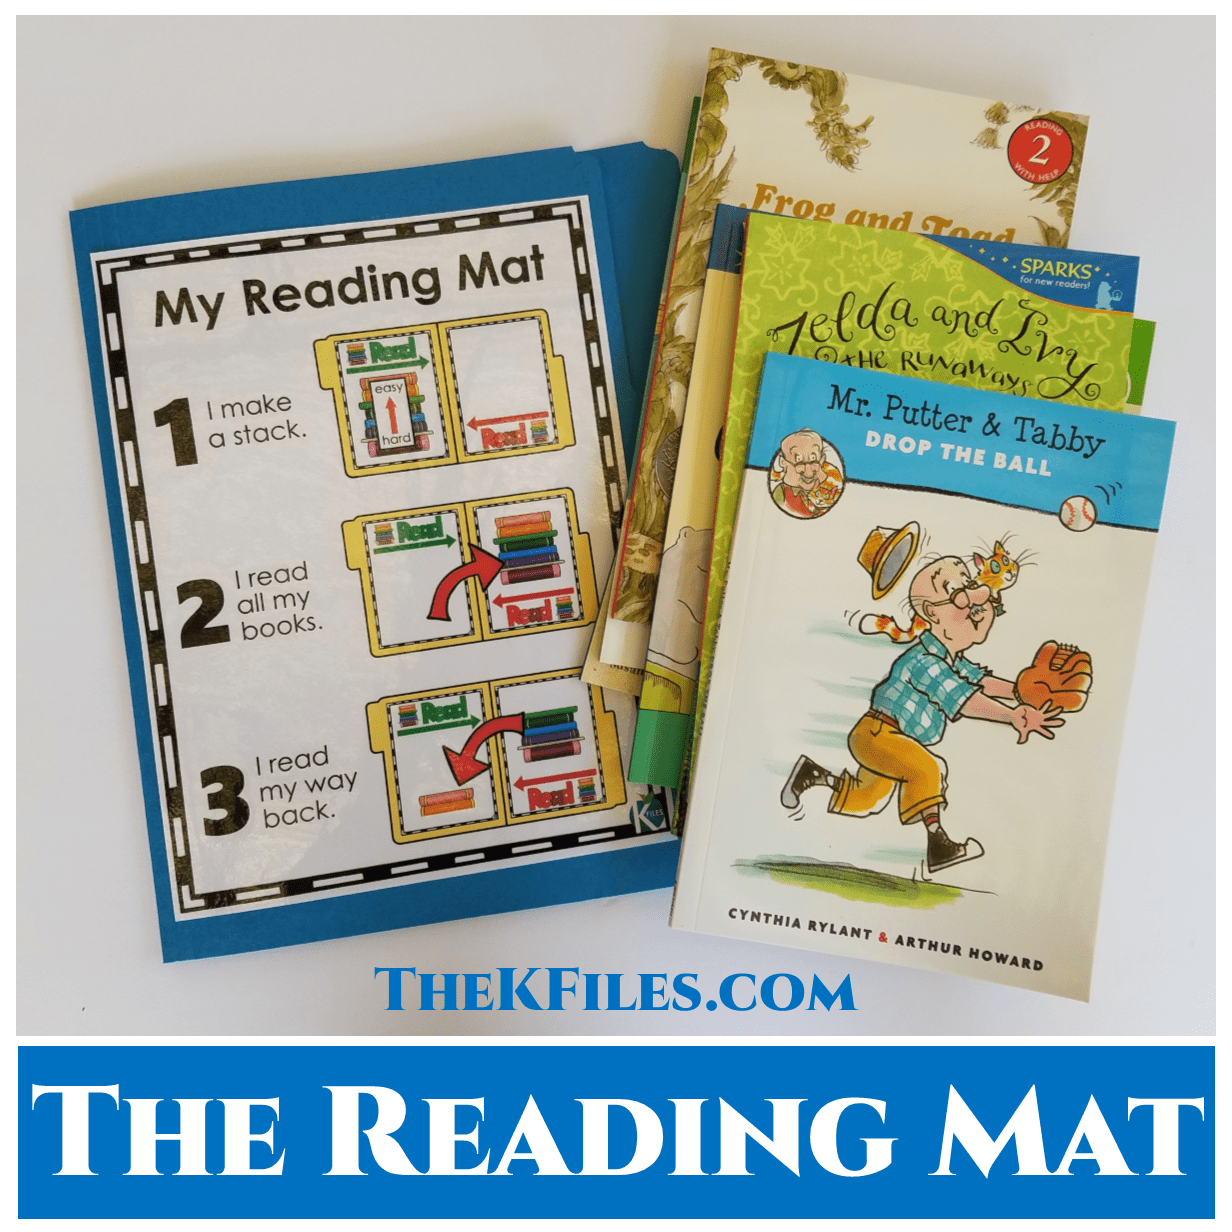 The Reading Mat will provide your students with a visual reminder of how to keep track of what they are reading and build stamina! This system will also encourage your students to reread and build their fluency during Reader's Workshop!